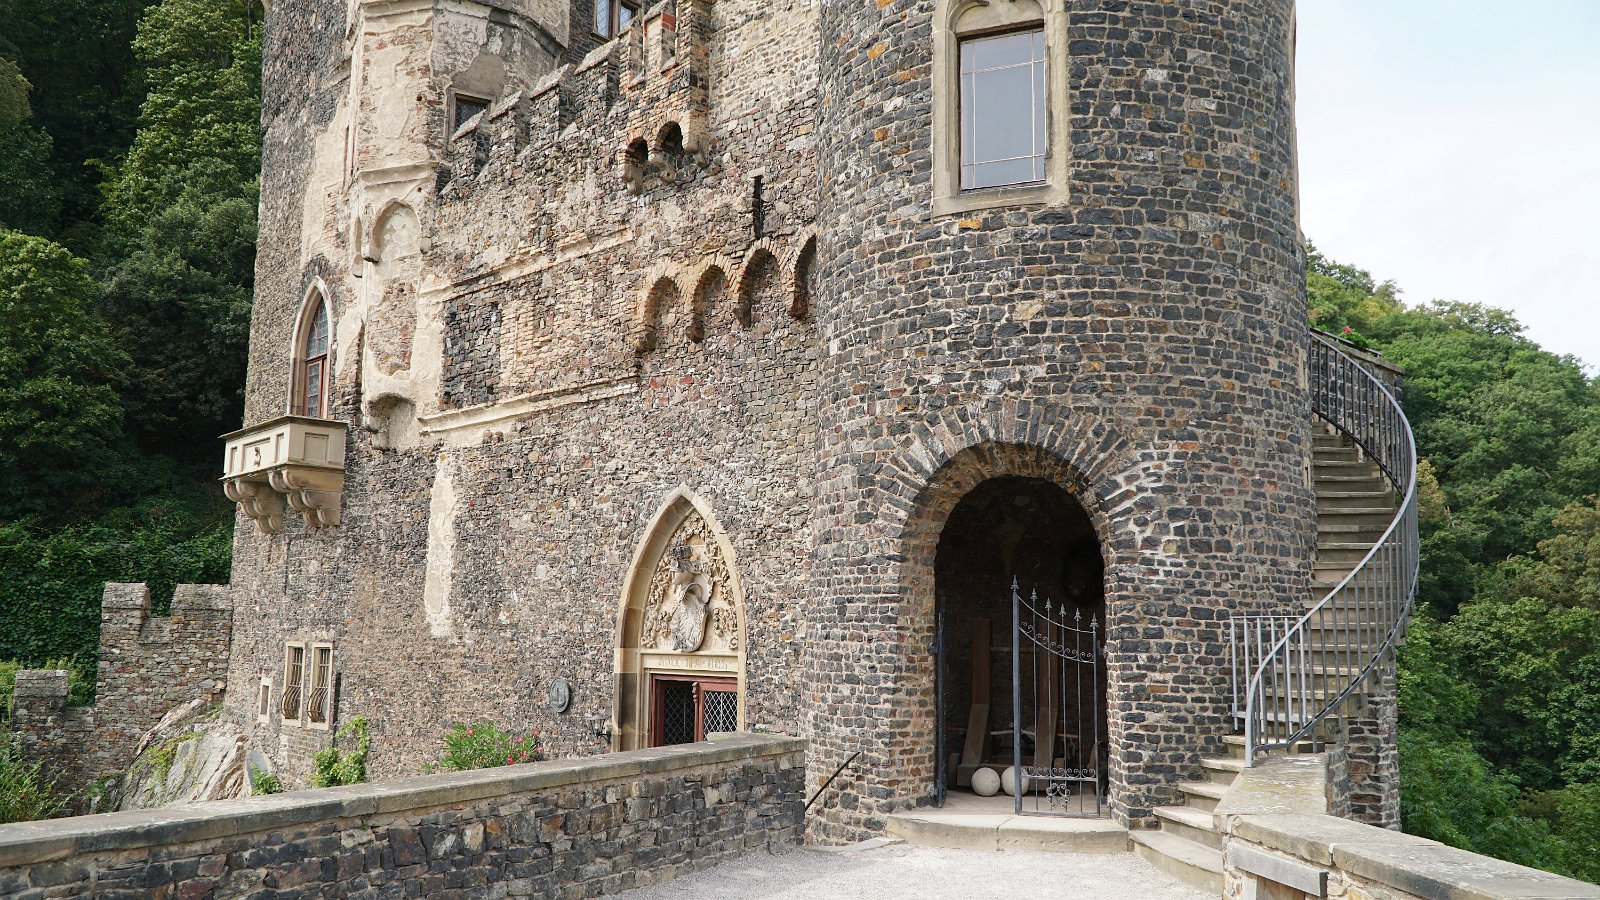 Visiting Rheinstein Castle on the Rhine River